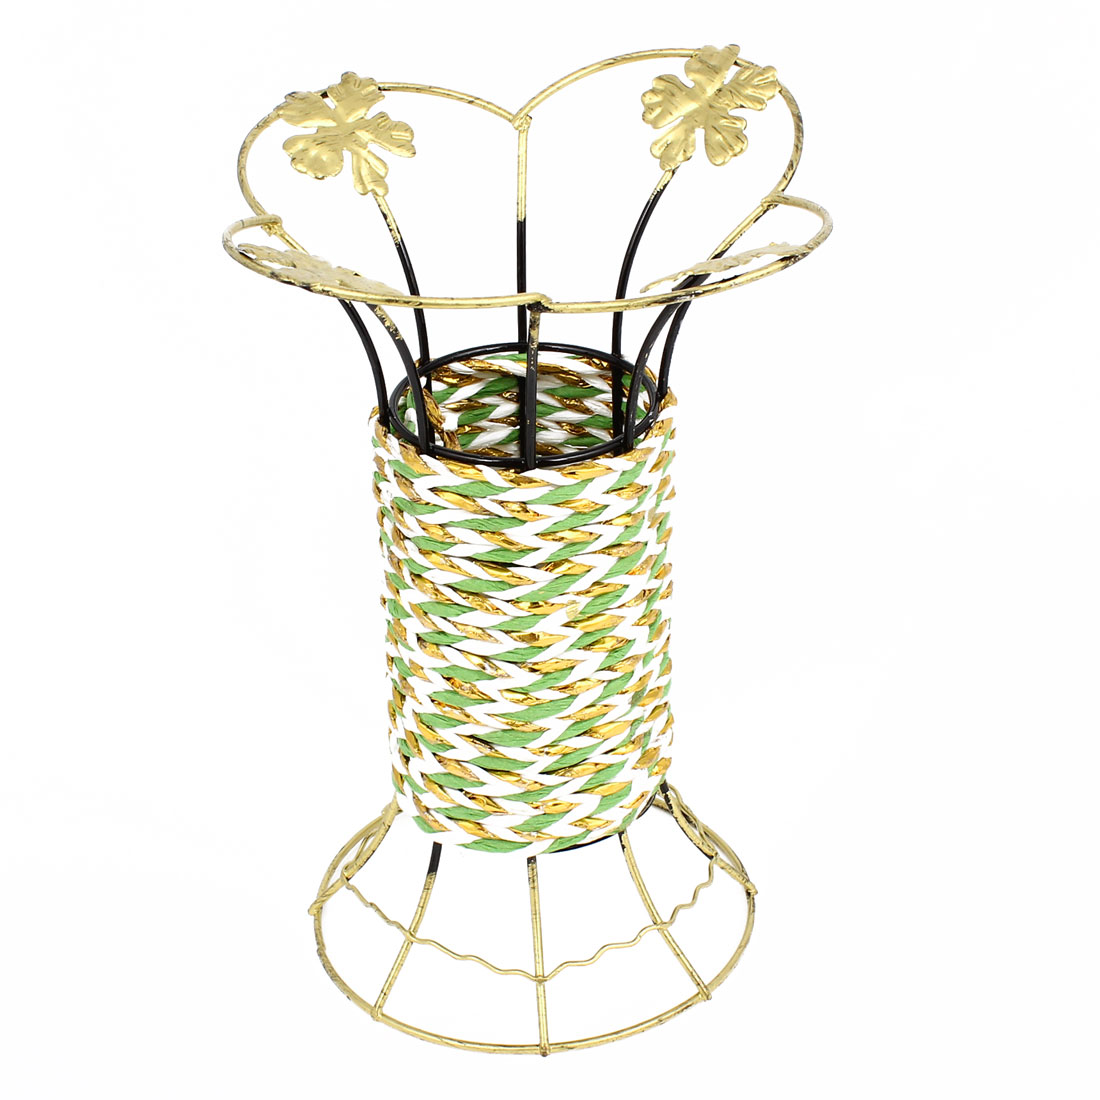 Bronze Tone Metal Frame Green Weave Craft Manmade Flowers Vase Holder